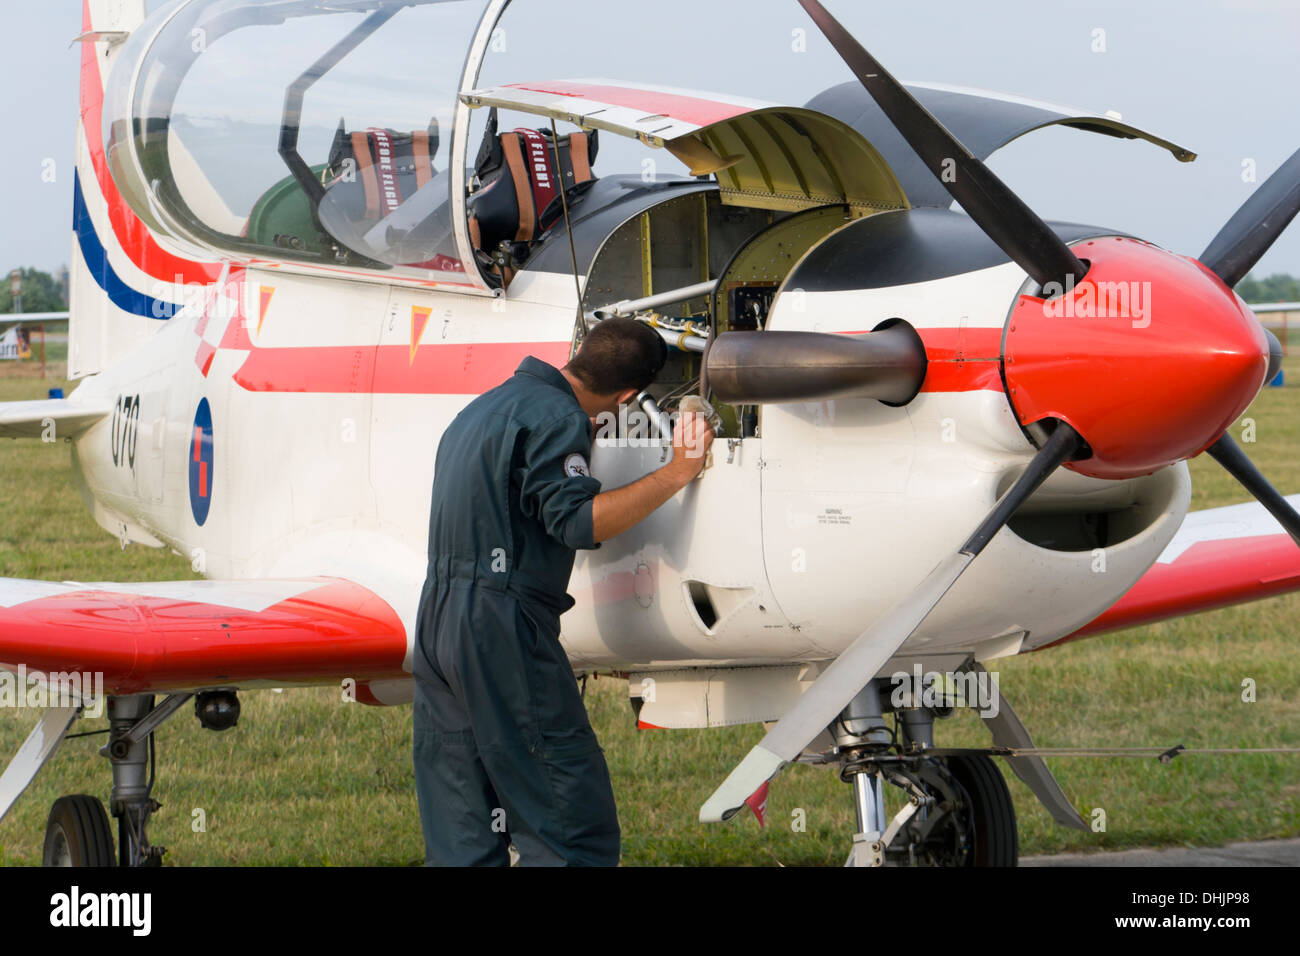 """""""Wings of storm"""" (Krila oluje) Croatian air force aerobatic team aircraft during a routine engine maintenance Stock Photo"""